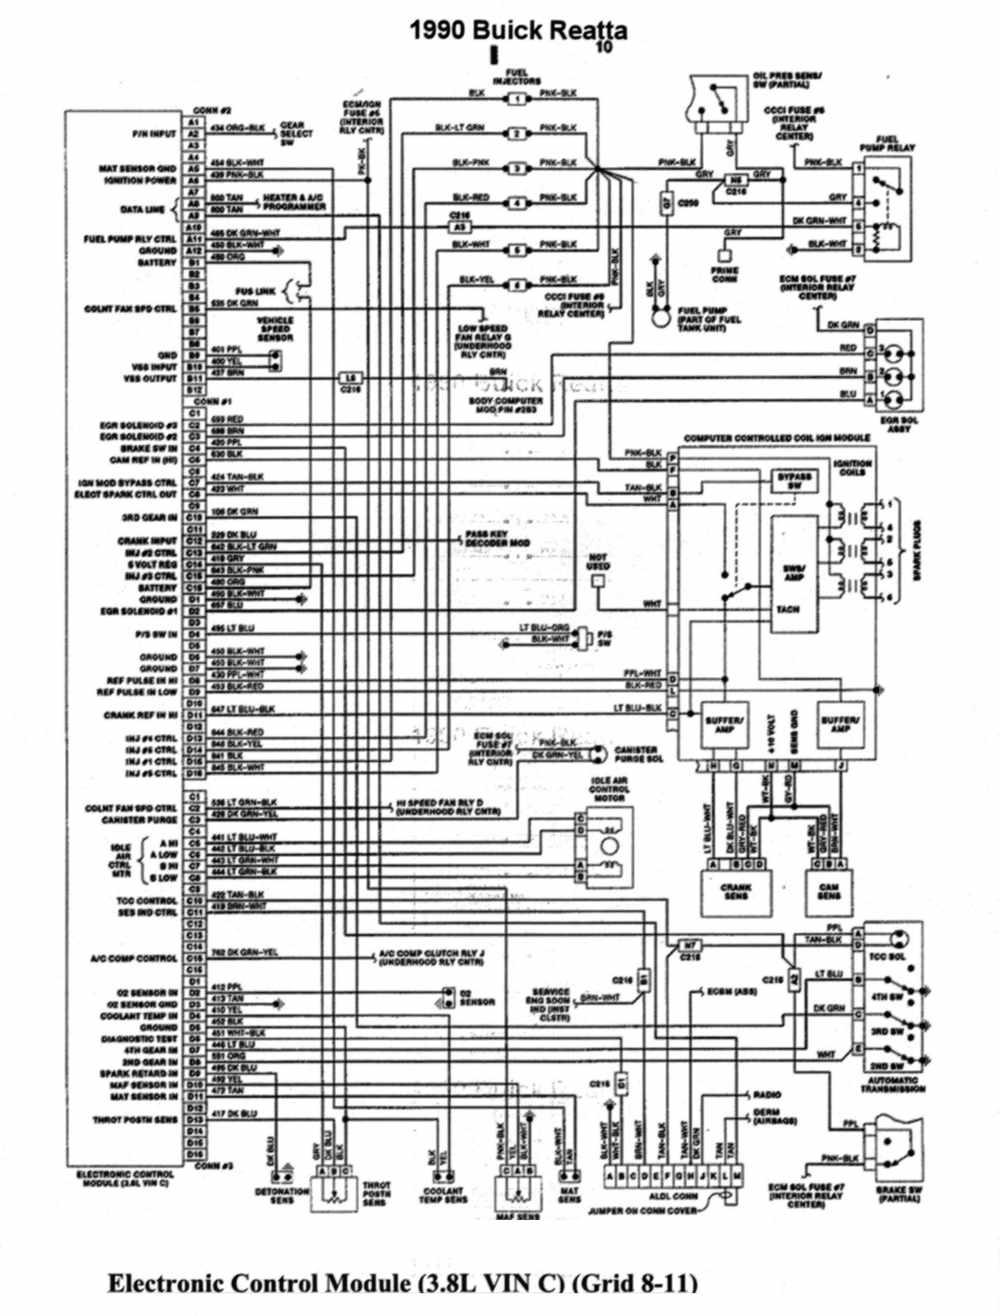 december 2011 all about wiring diagrams buick enclave wiring diagram buick century wiring diagram [ 1000 x 1316 Pixel ]